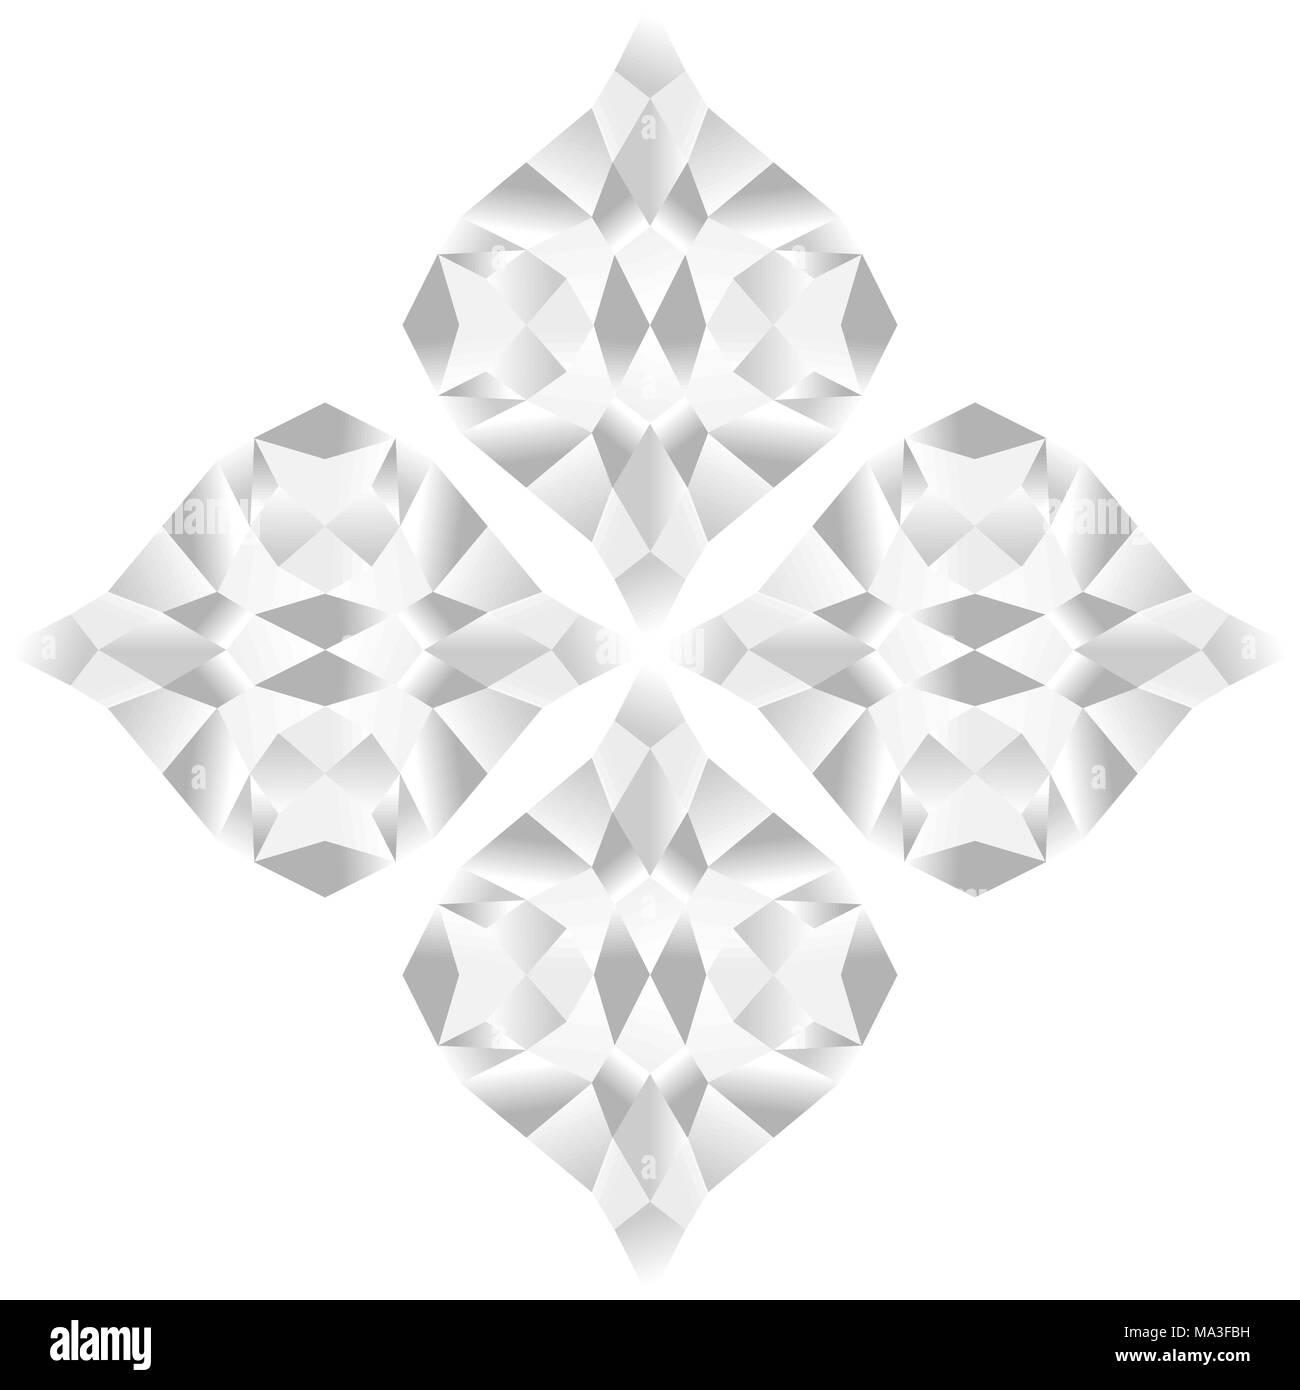 Abstract flower pattern of gradient black and white colors, isolated on white (transparent) background. Vector illustration, EPS10. - Stock Image